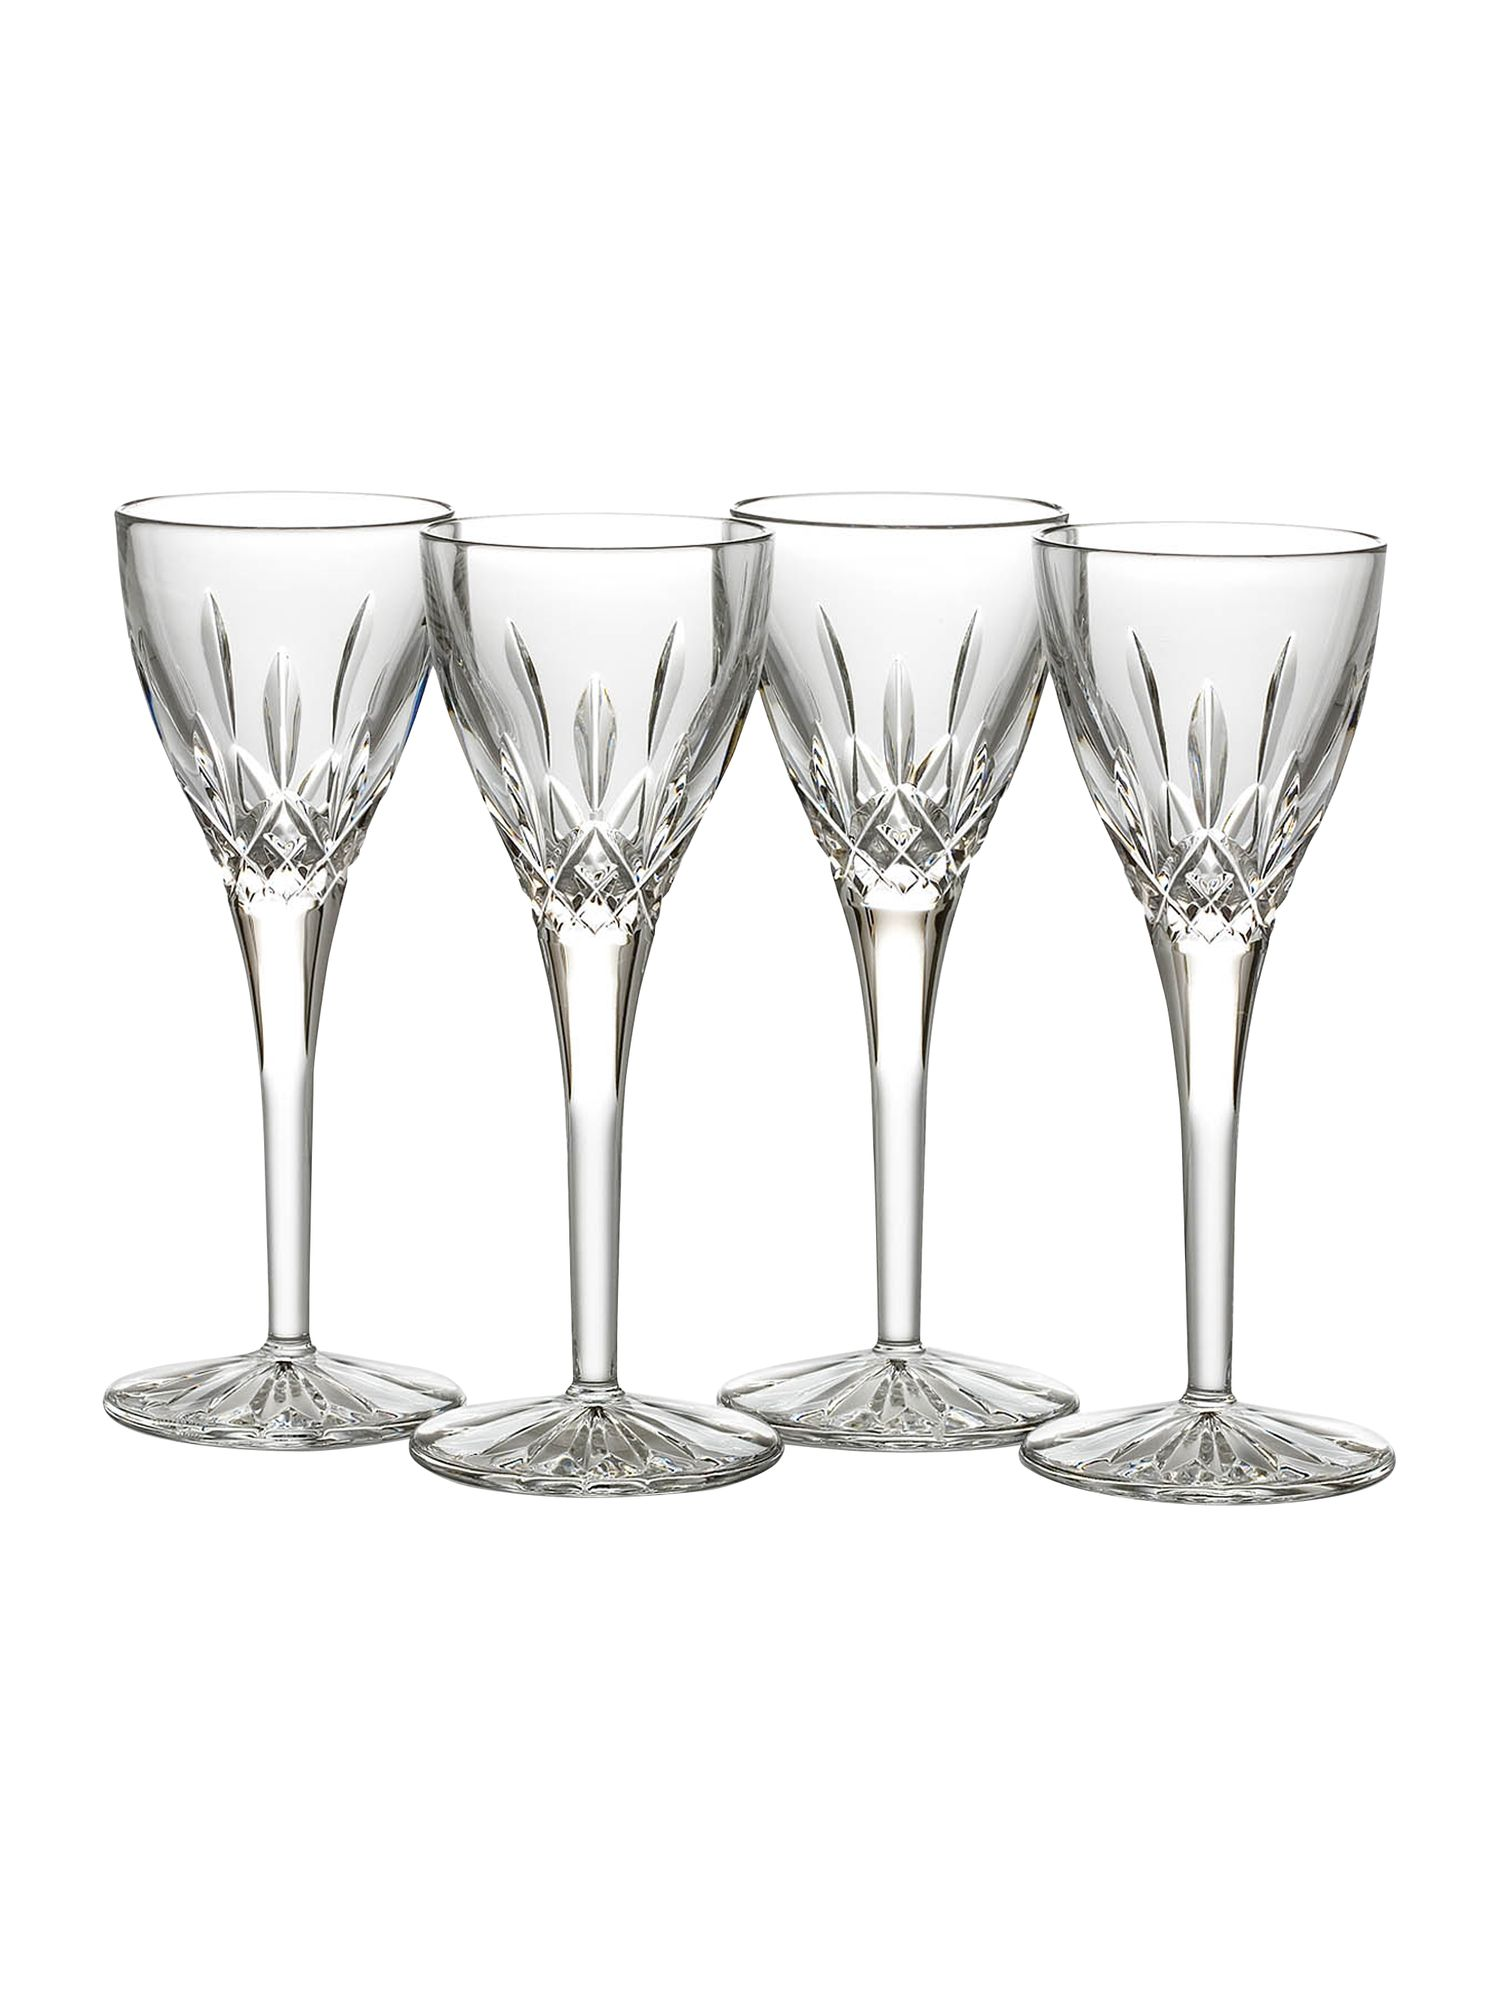 Lismore cordials glasses, box of 4